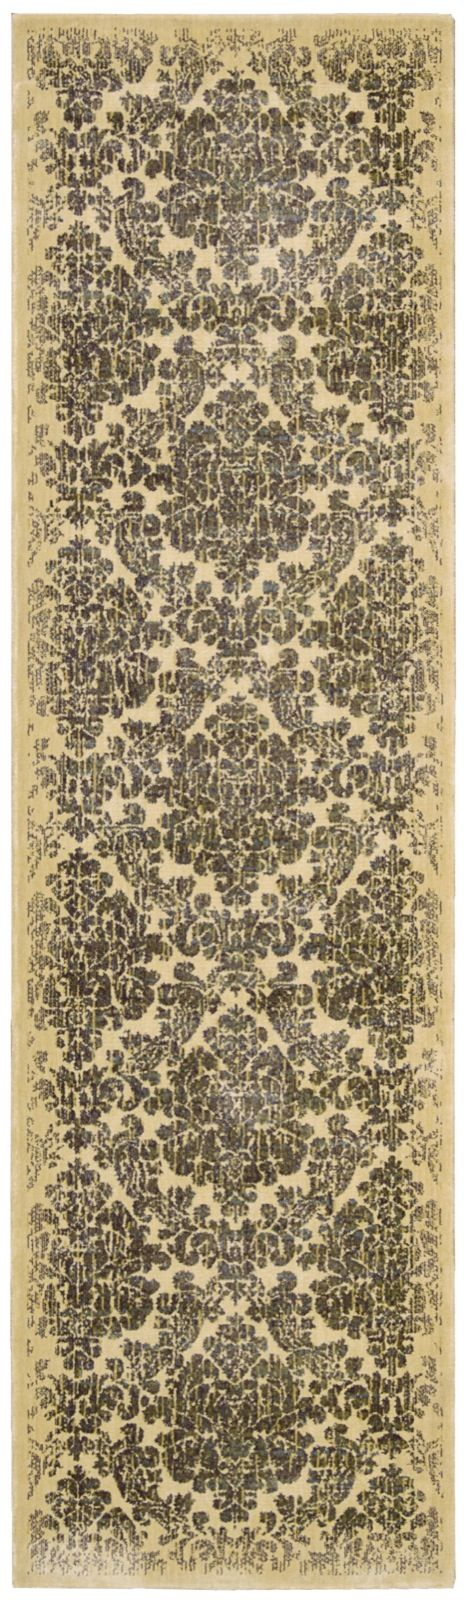 nourison chambord transitional area rug collection